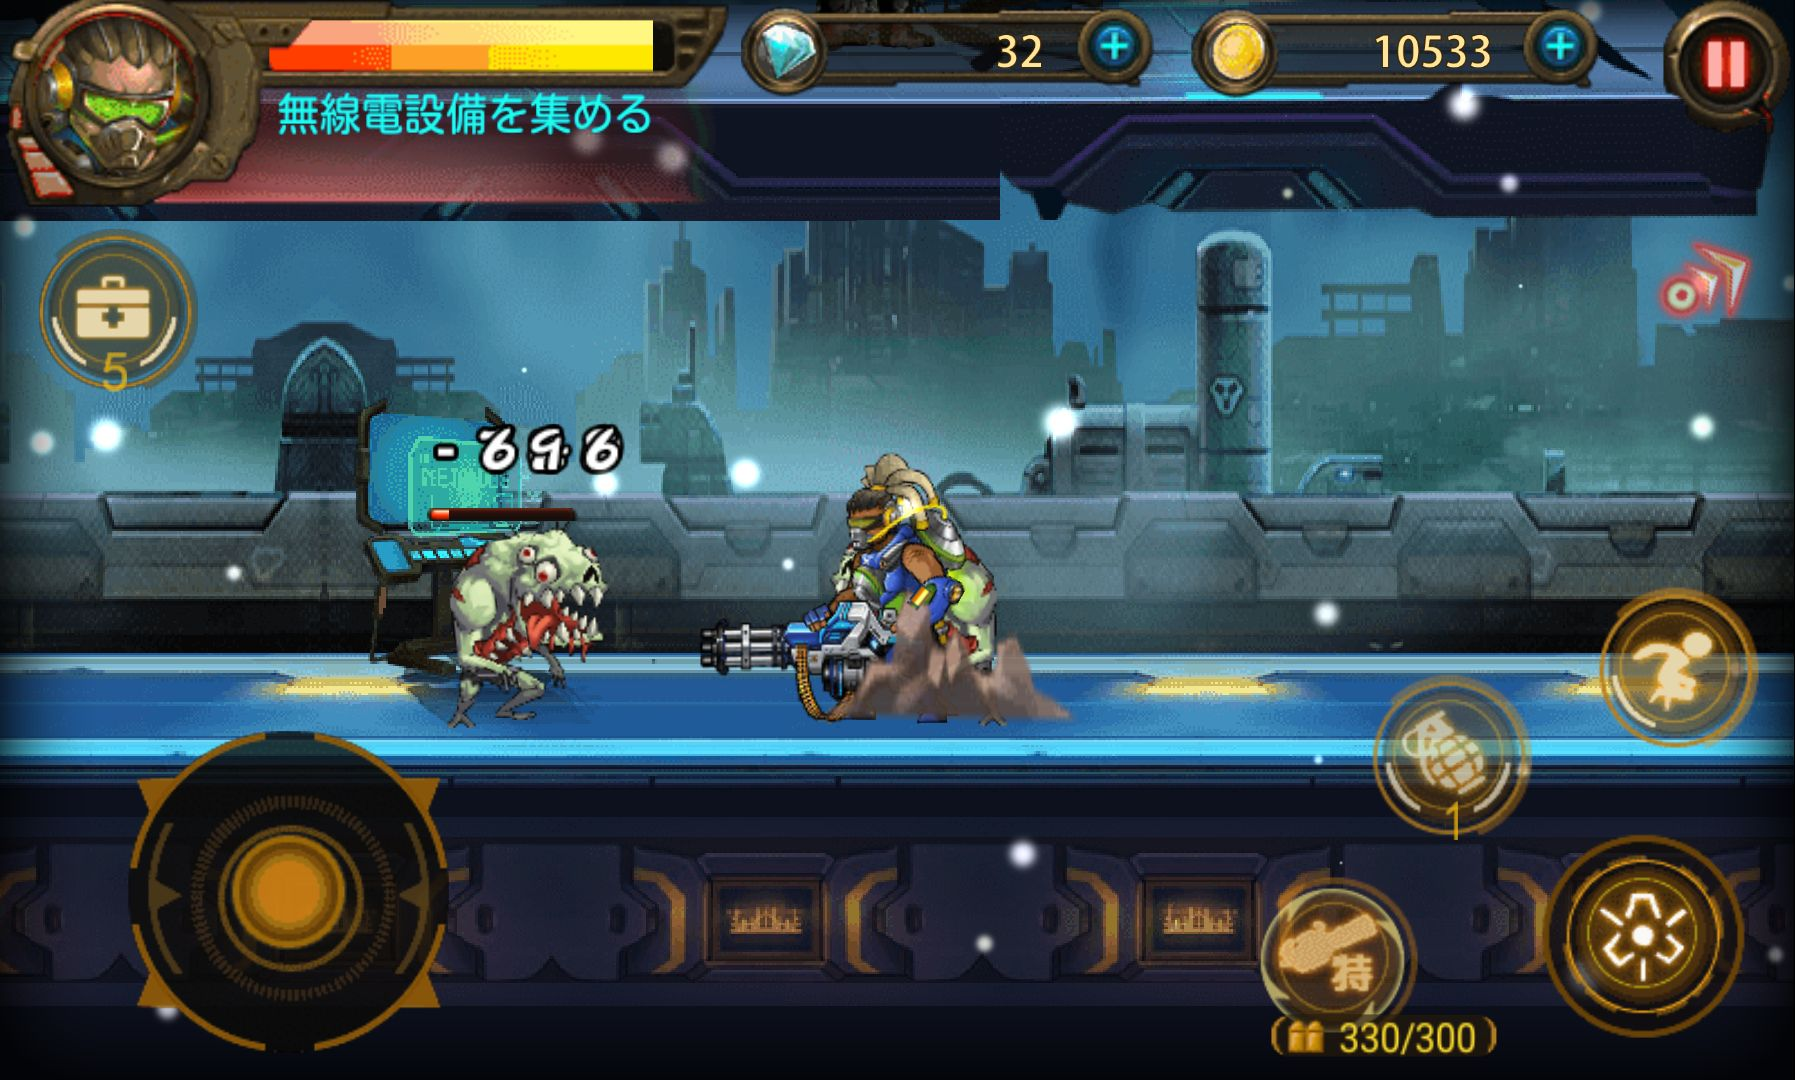 androidアプリ Heroic Action ゾンビ殲滅戦攻略スクリーンショット3